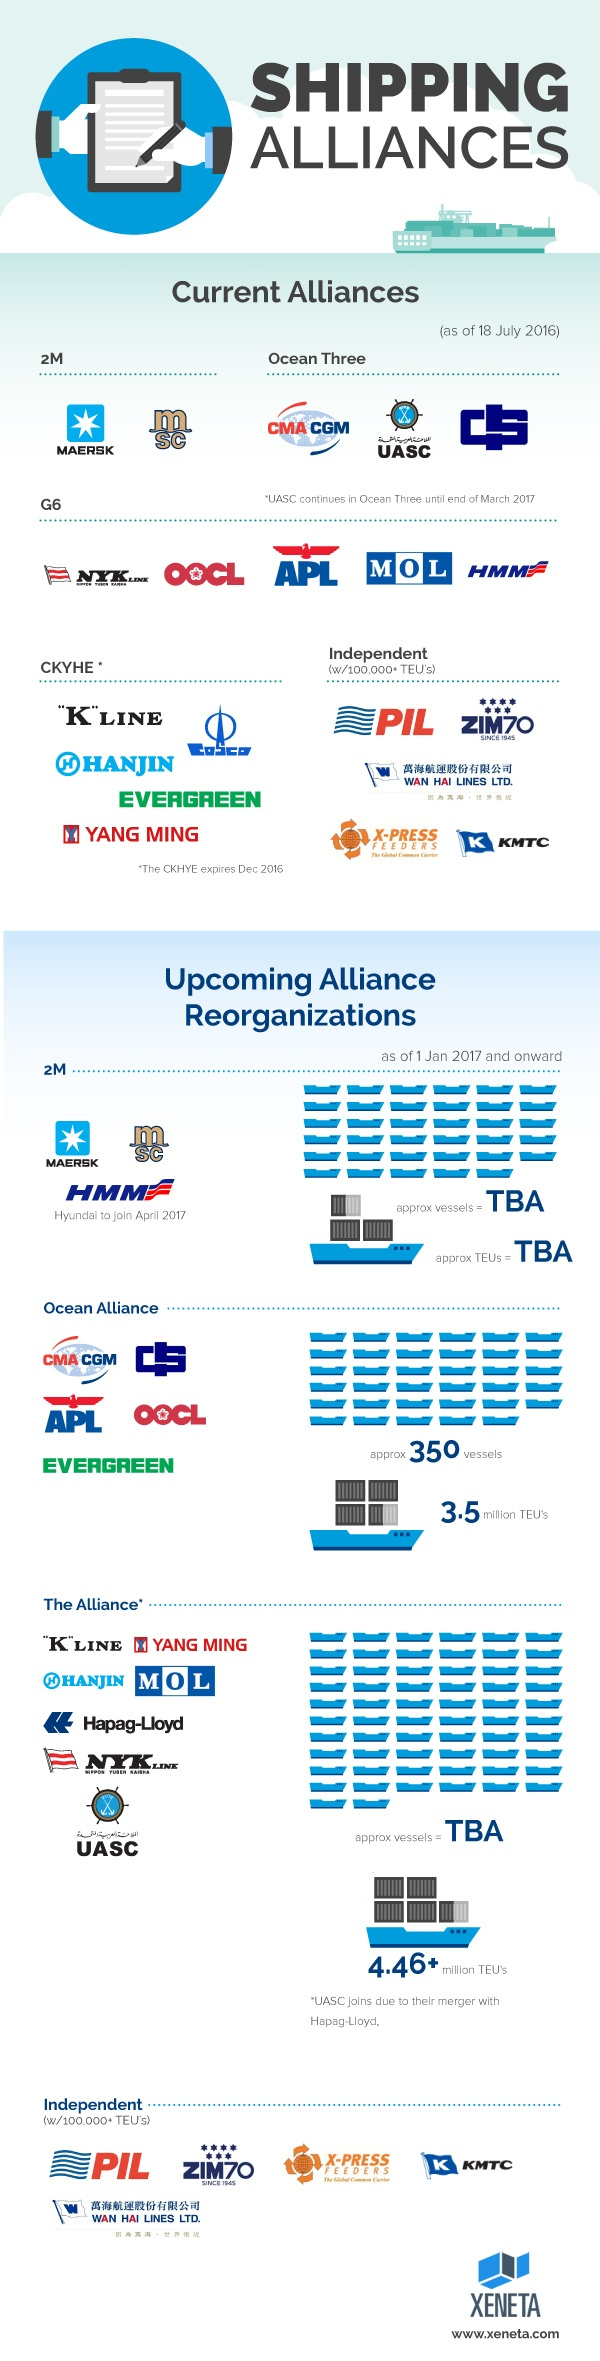 World shipping alliances, infographic